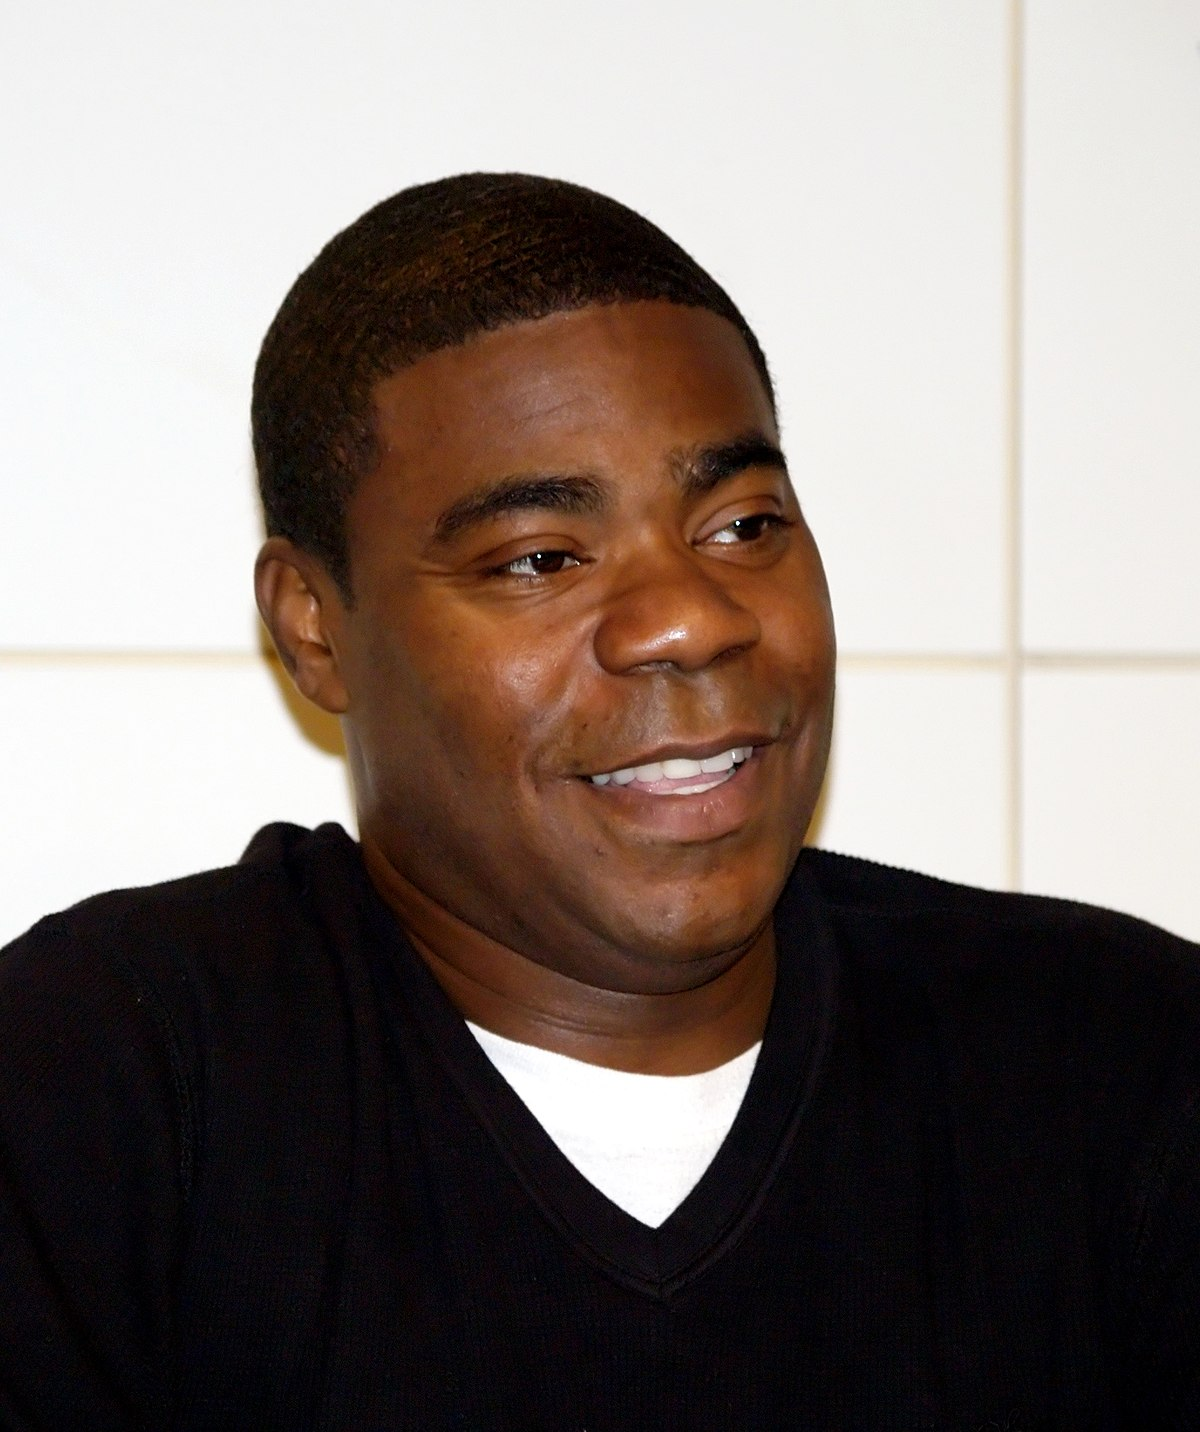 Tracy morgan wikipedia for The morgan